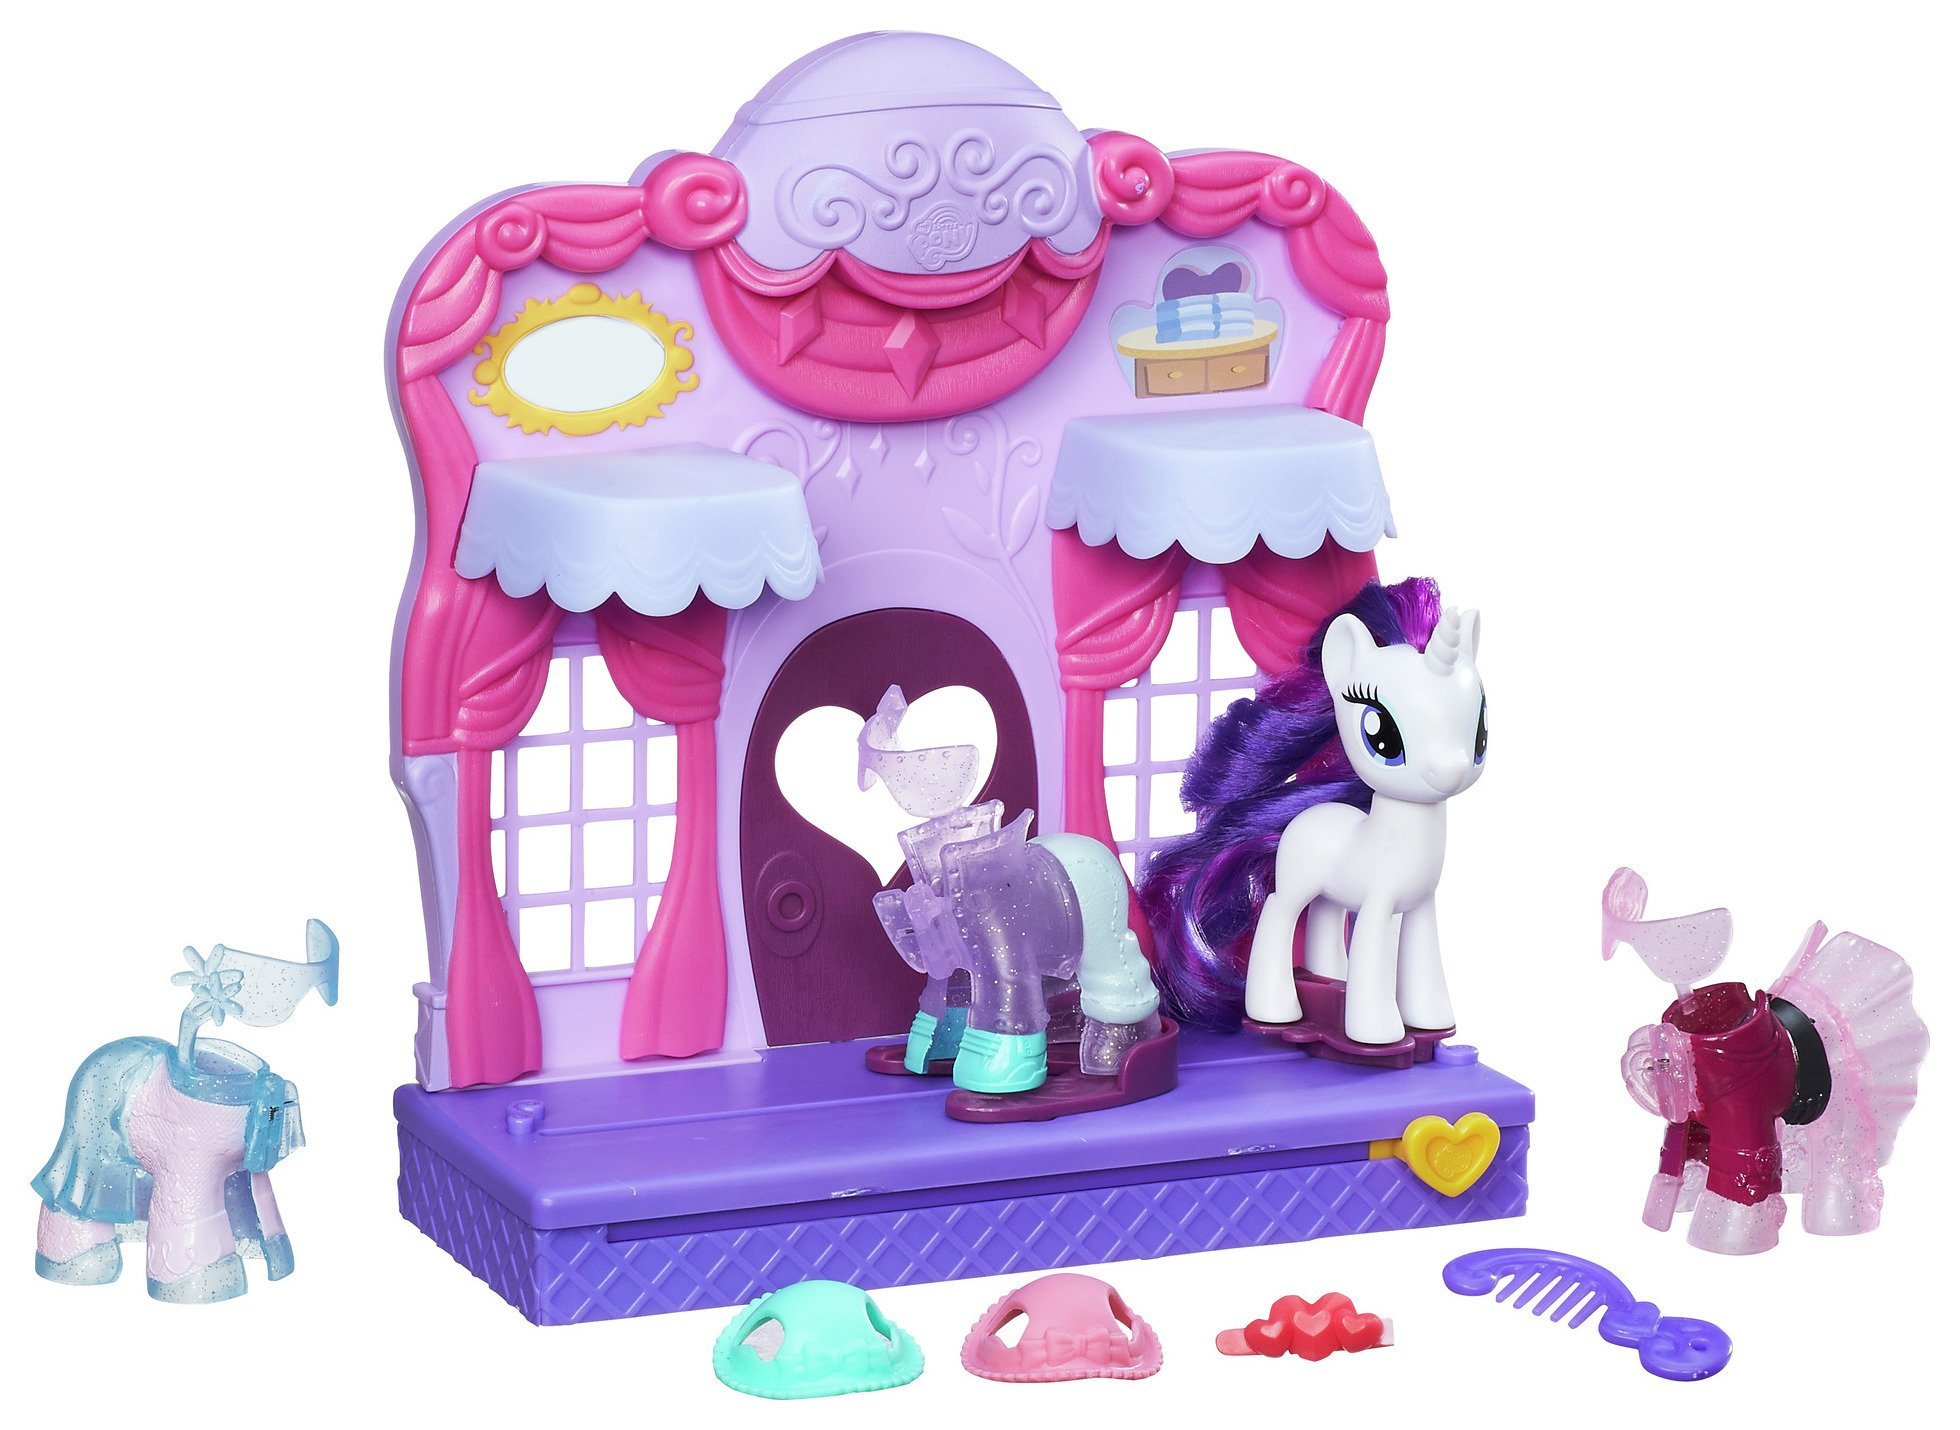 My Little Pony - Friendship is Magic Rarity Fashion Runway